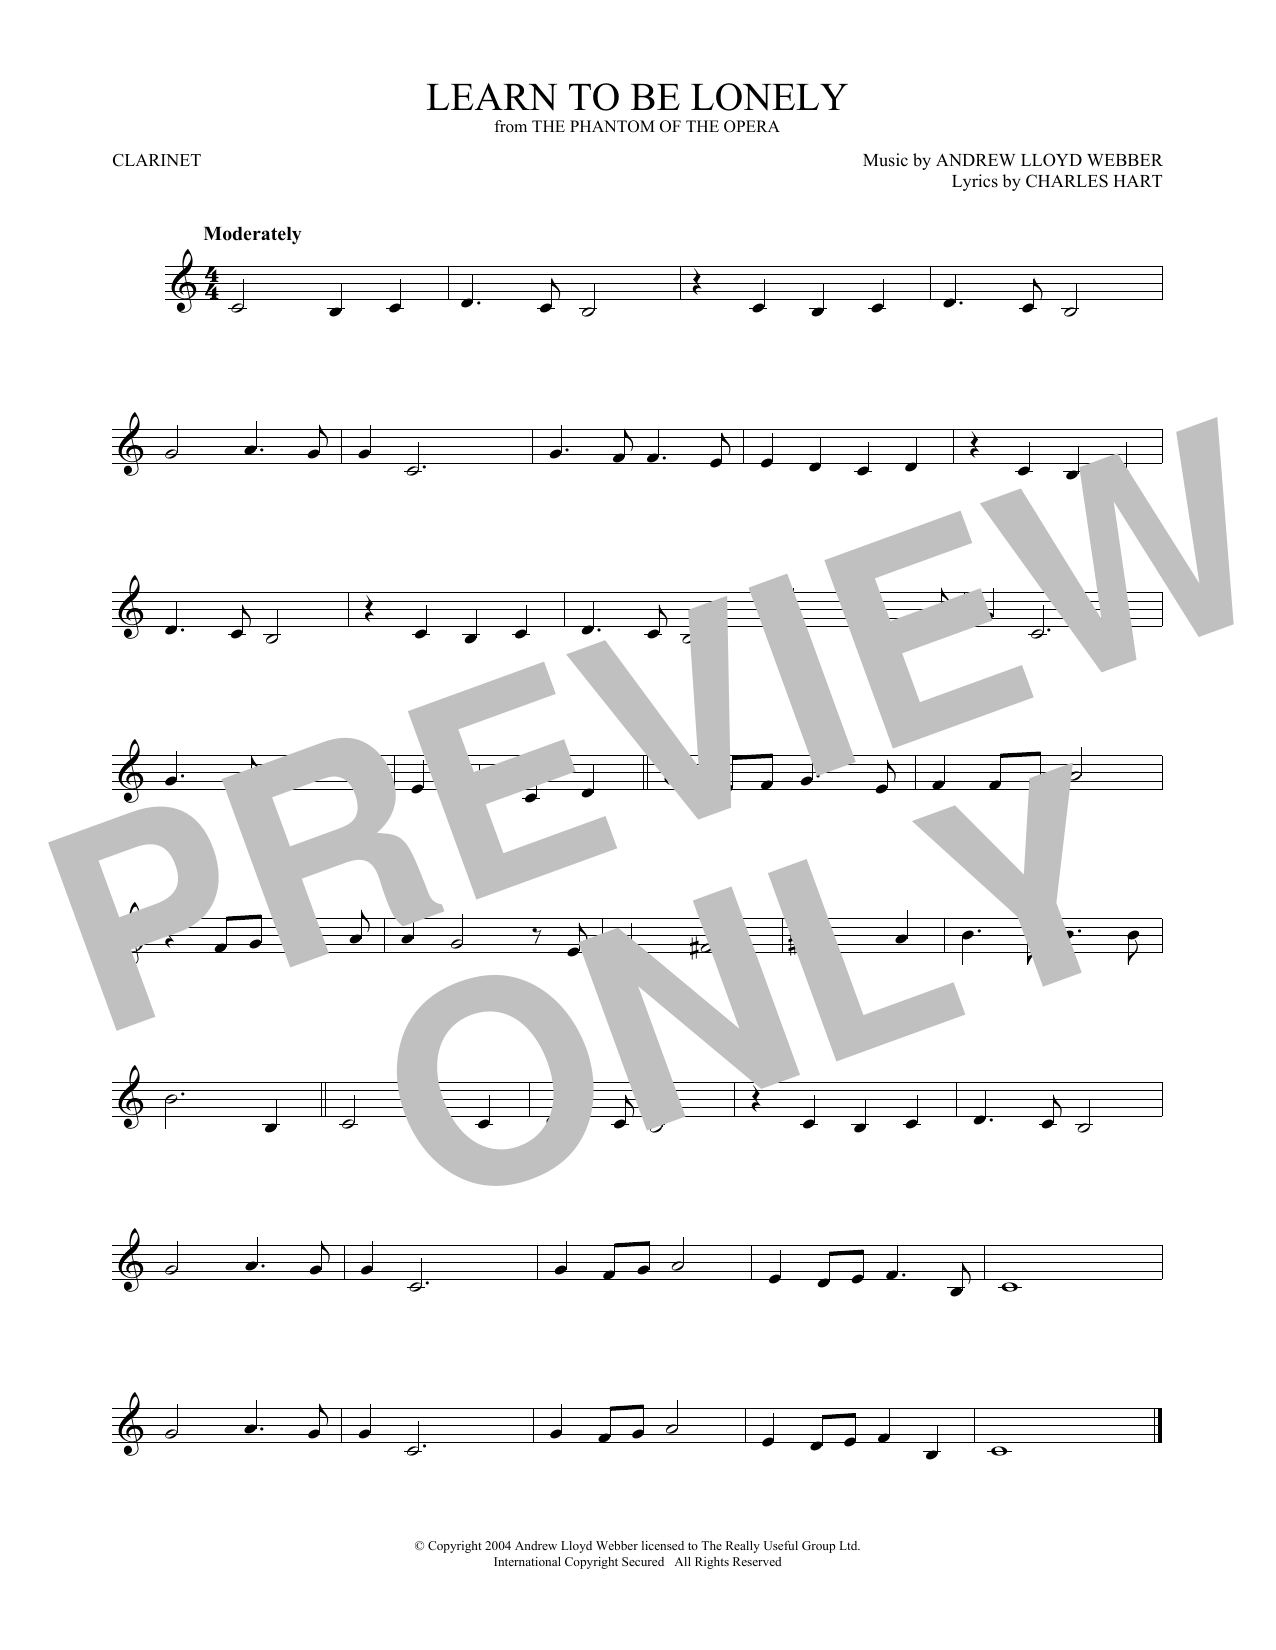 Andrew Lloyd Webber 'Learn To Be Lonely (from The Phantom Of The Opera)'  Sheet Music Notes, Chords   Download Printable Trumpet Solo - SKU: 418921